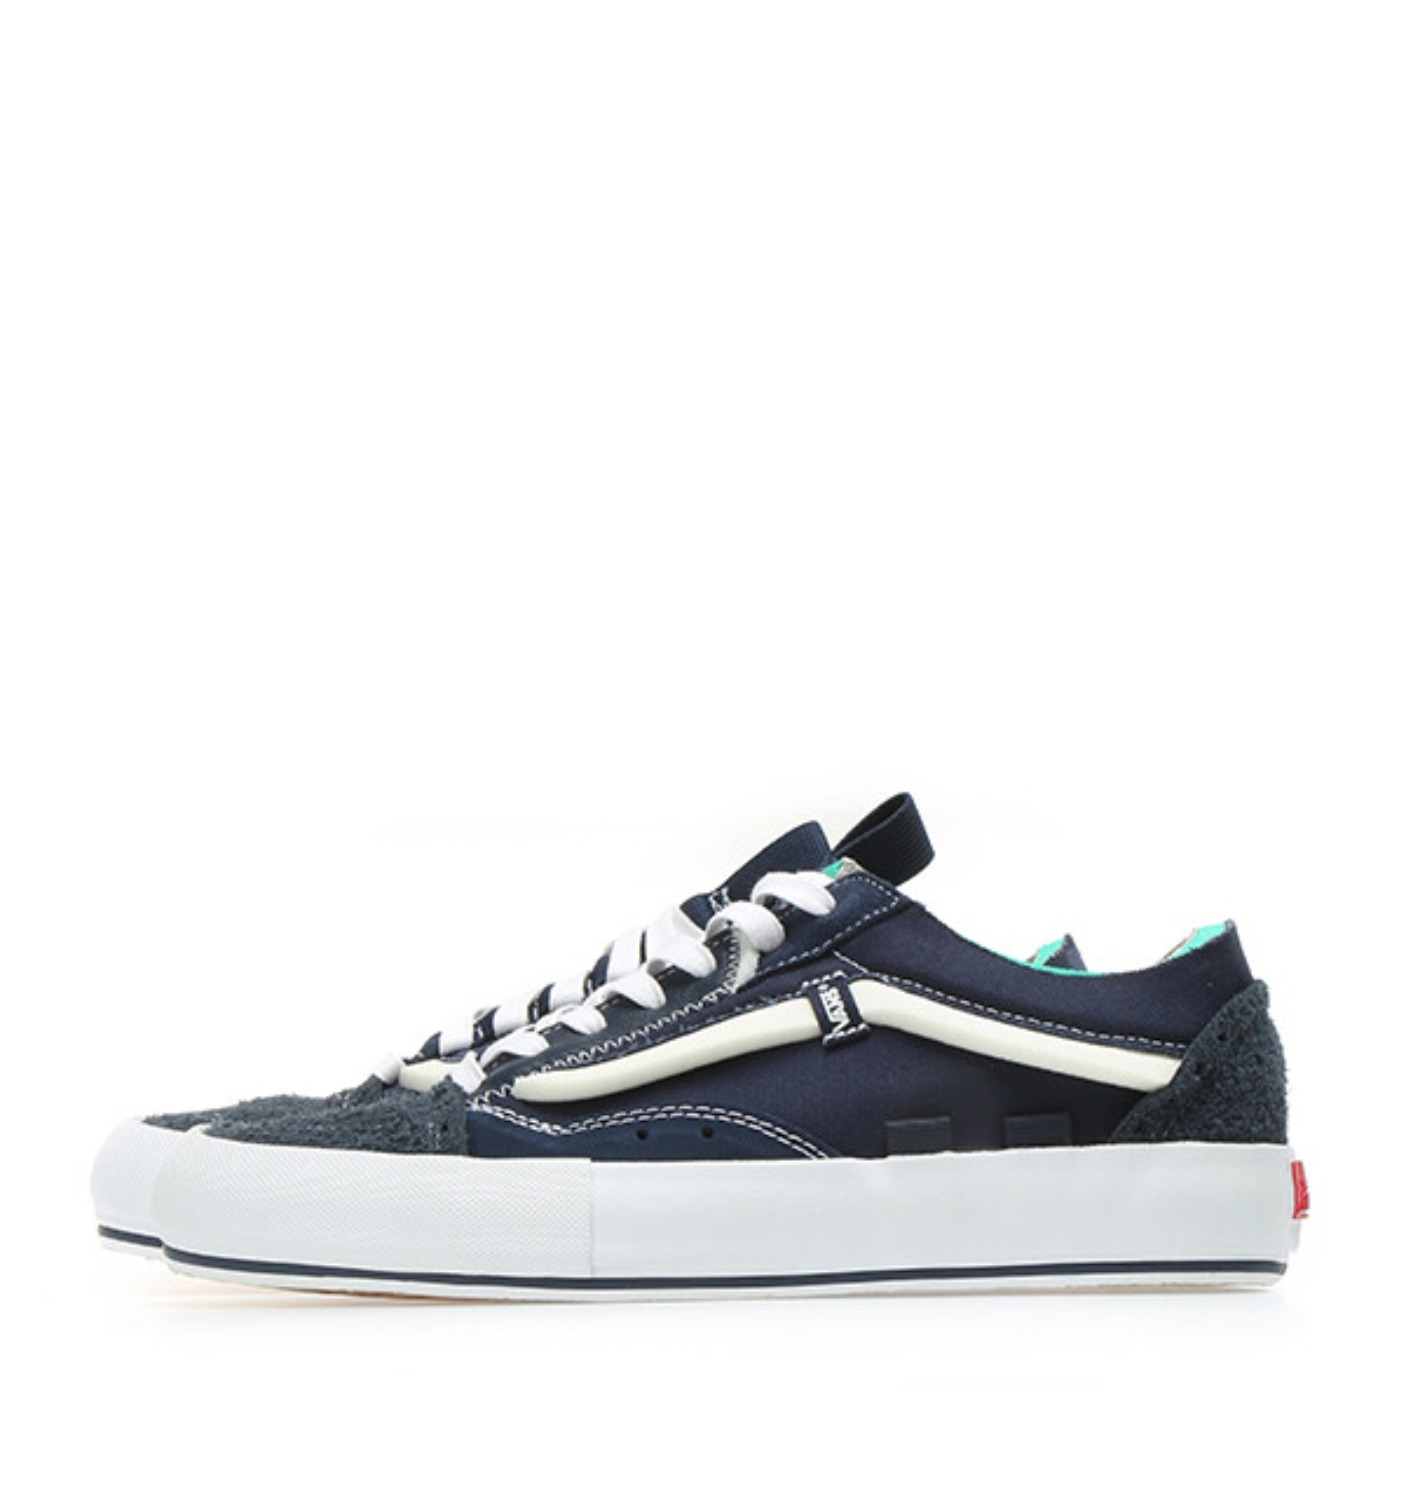 OLD SKOOL CAP LX(REGRIND) DRESS BLUE (VN0A45K1VZU)